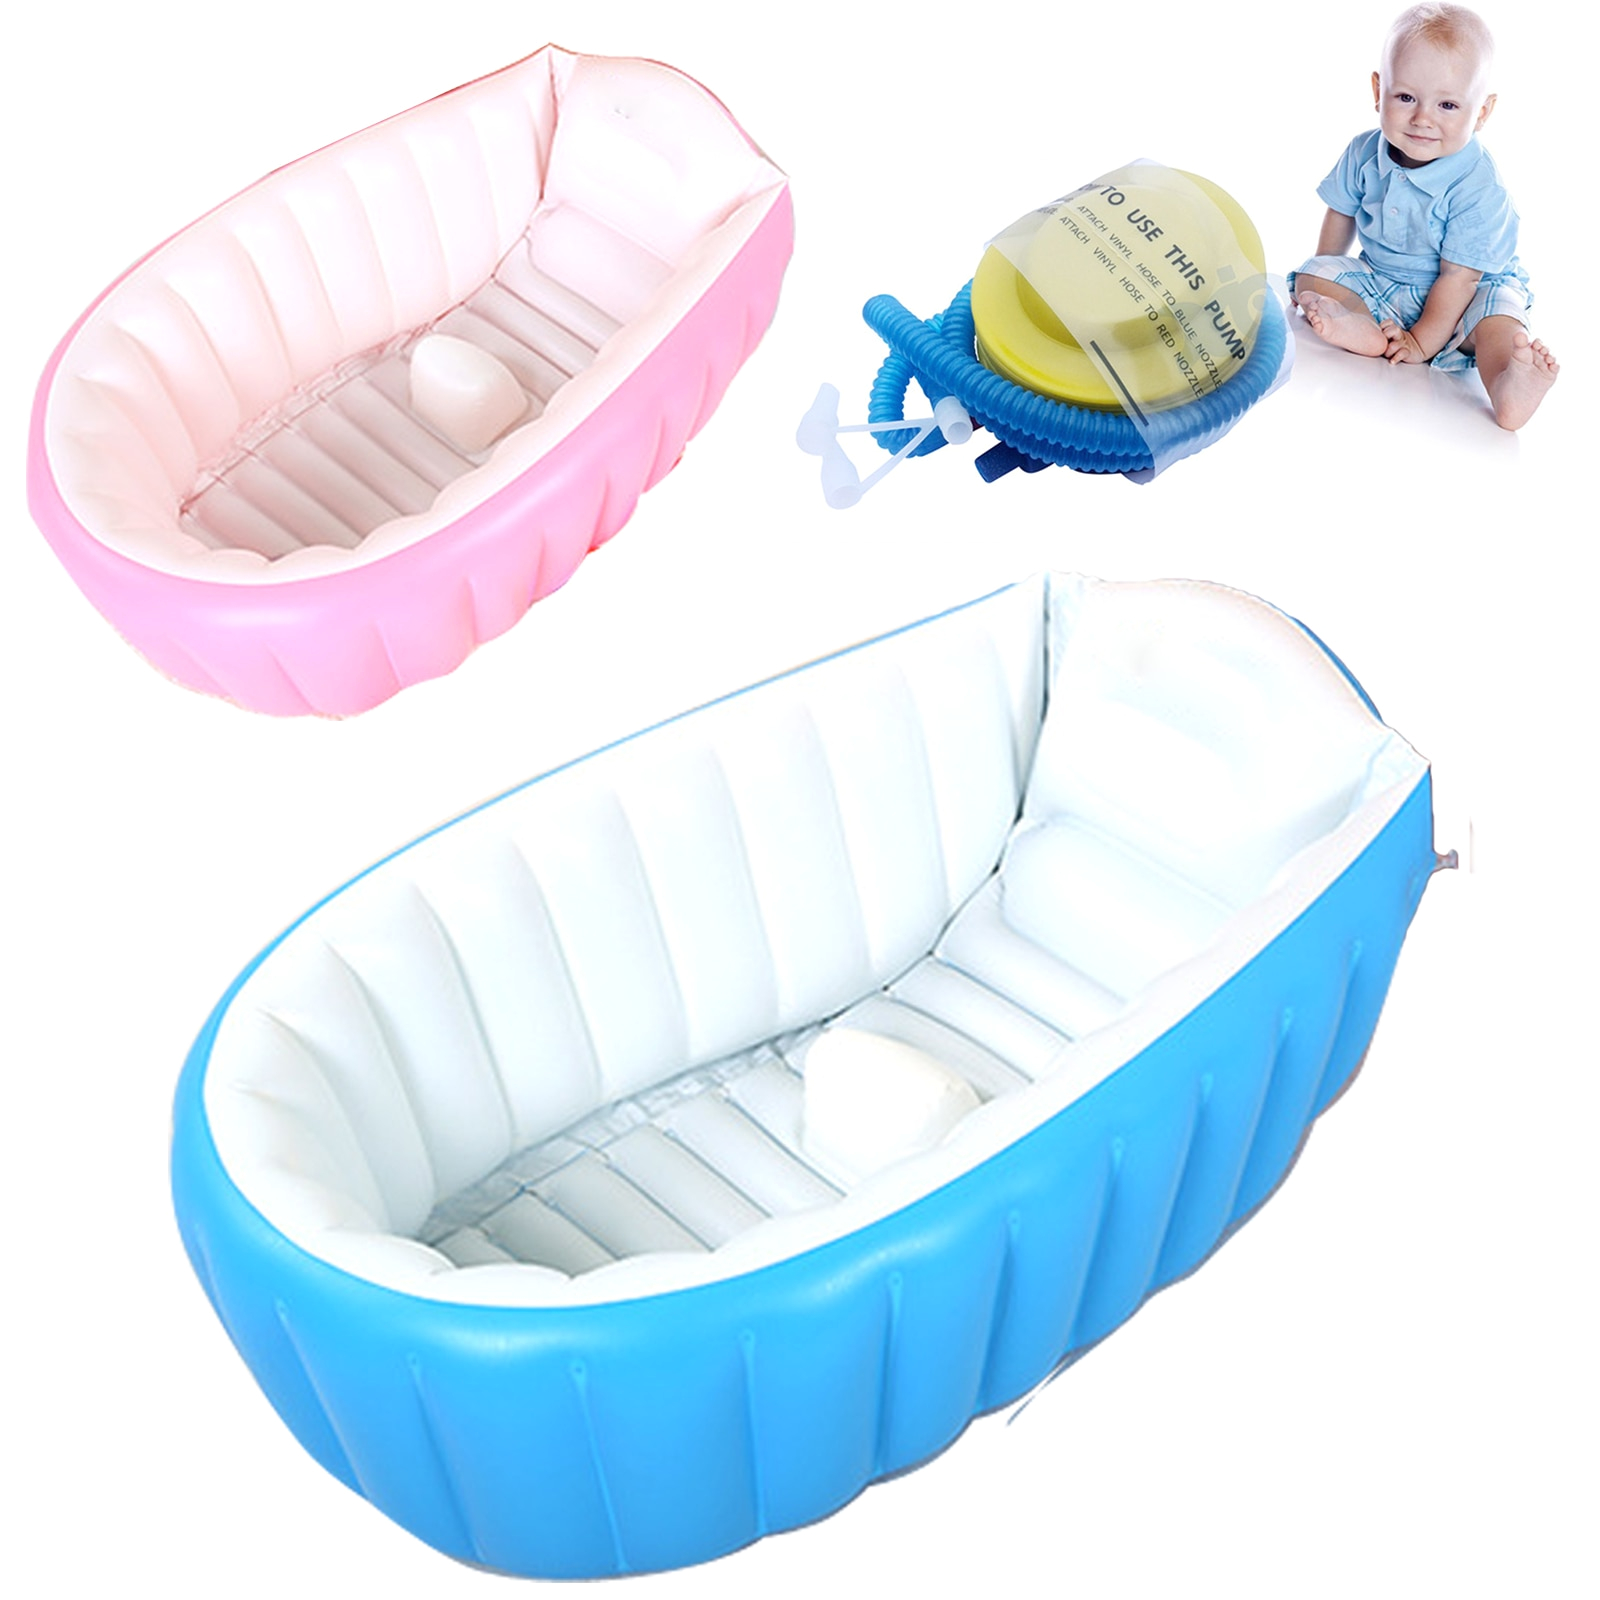 Inflatable Baby Bathtubs 2017 Real top Fashion Baby Ring Inflatable Tubs Infant